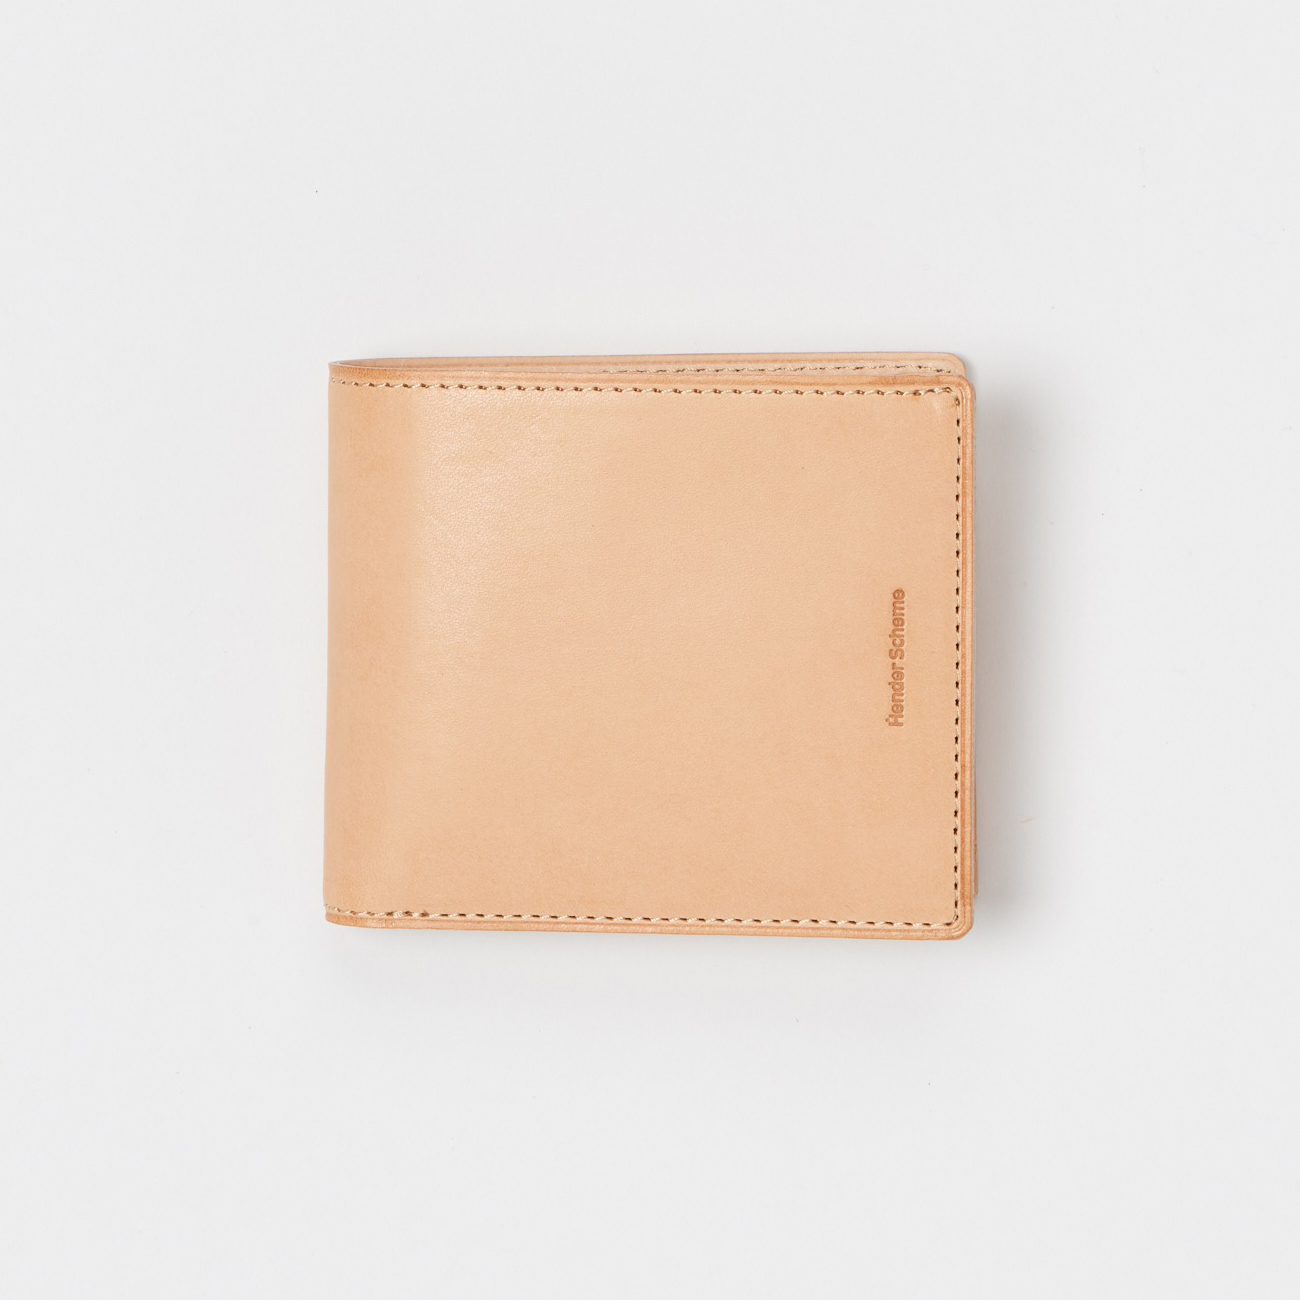 Hender Scheme - half folded wallet - Natural